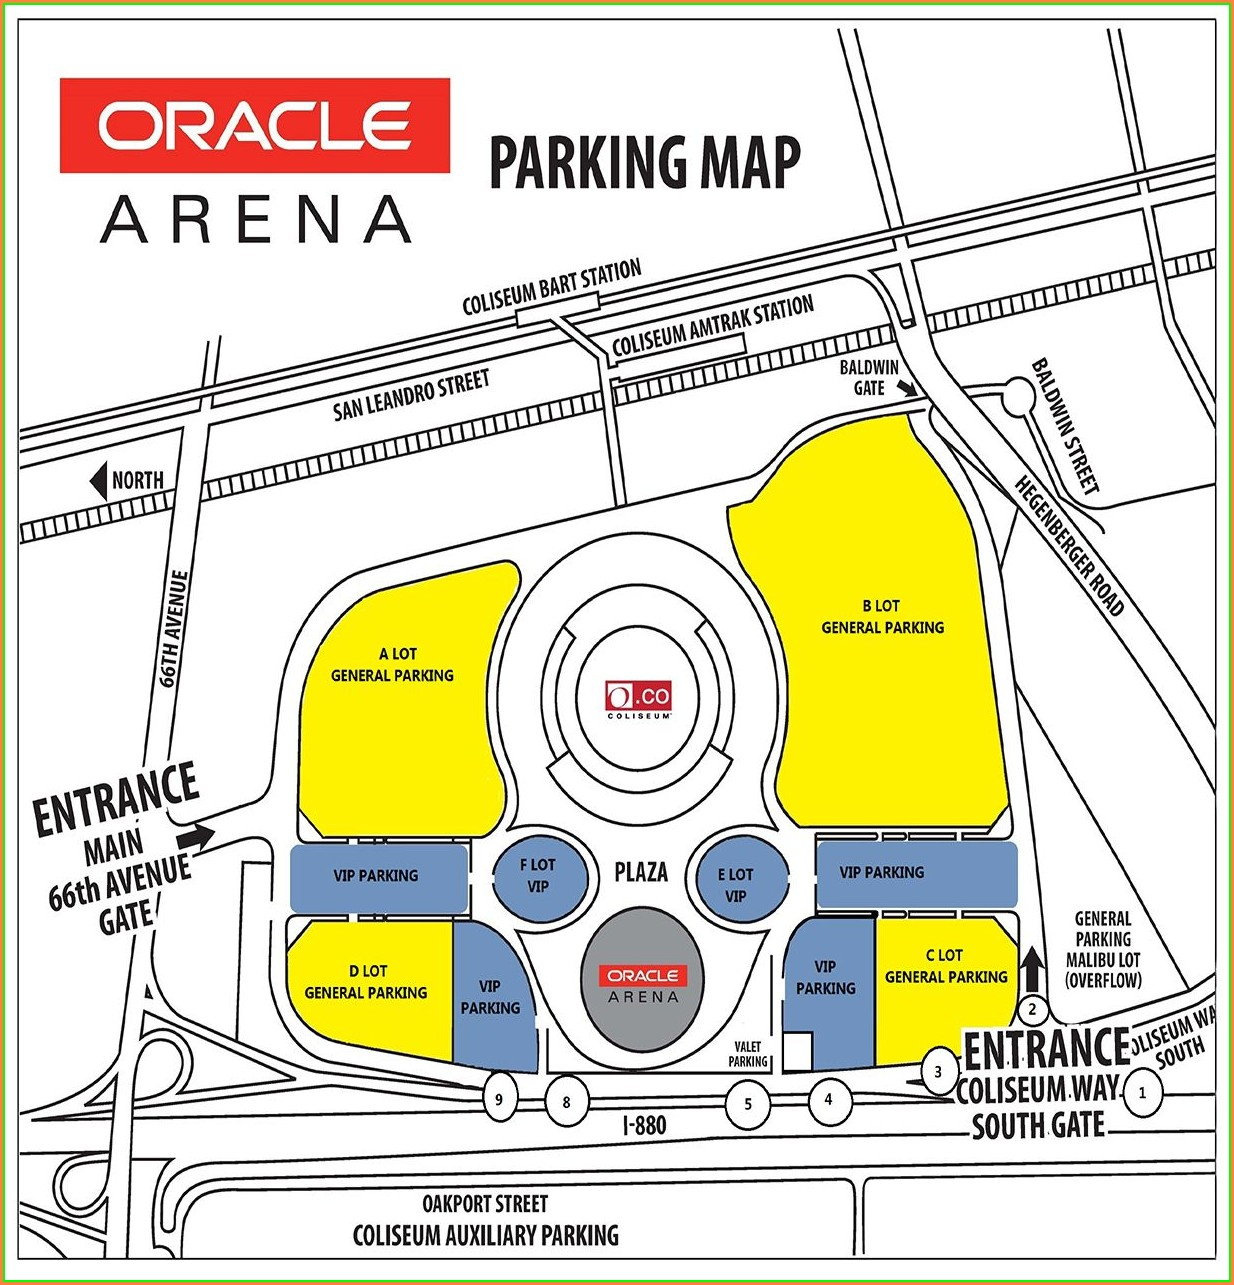 Oakland Coliseum Vip Parking Map